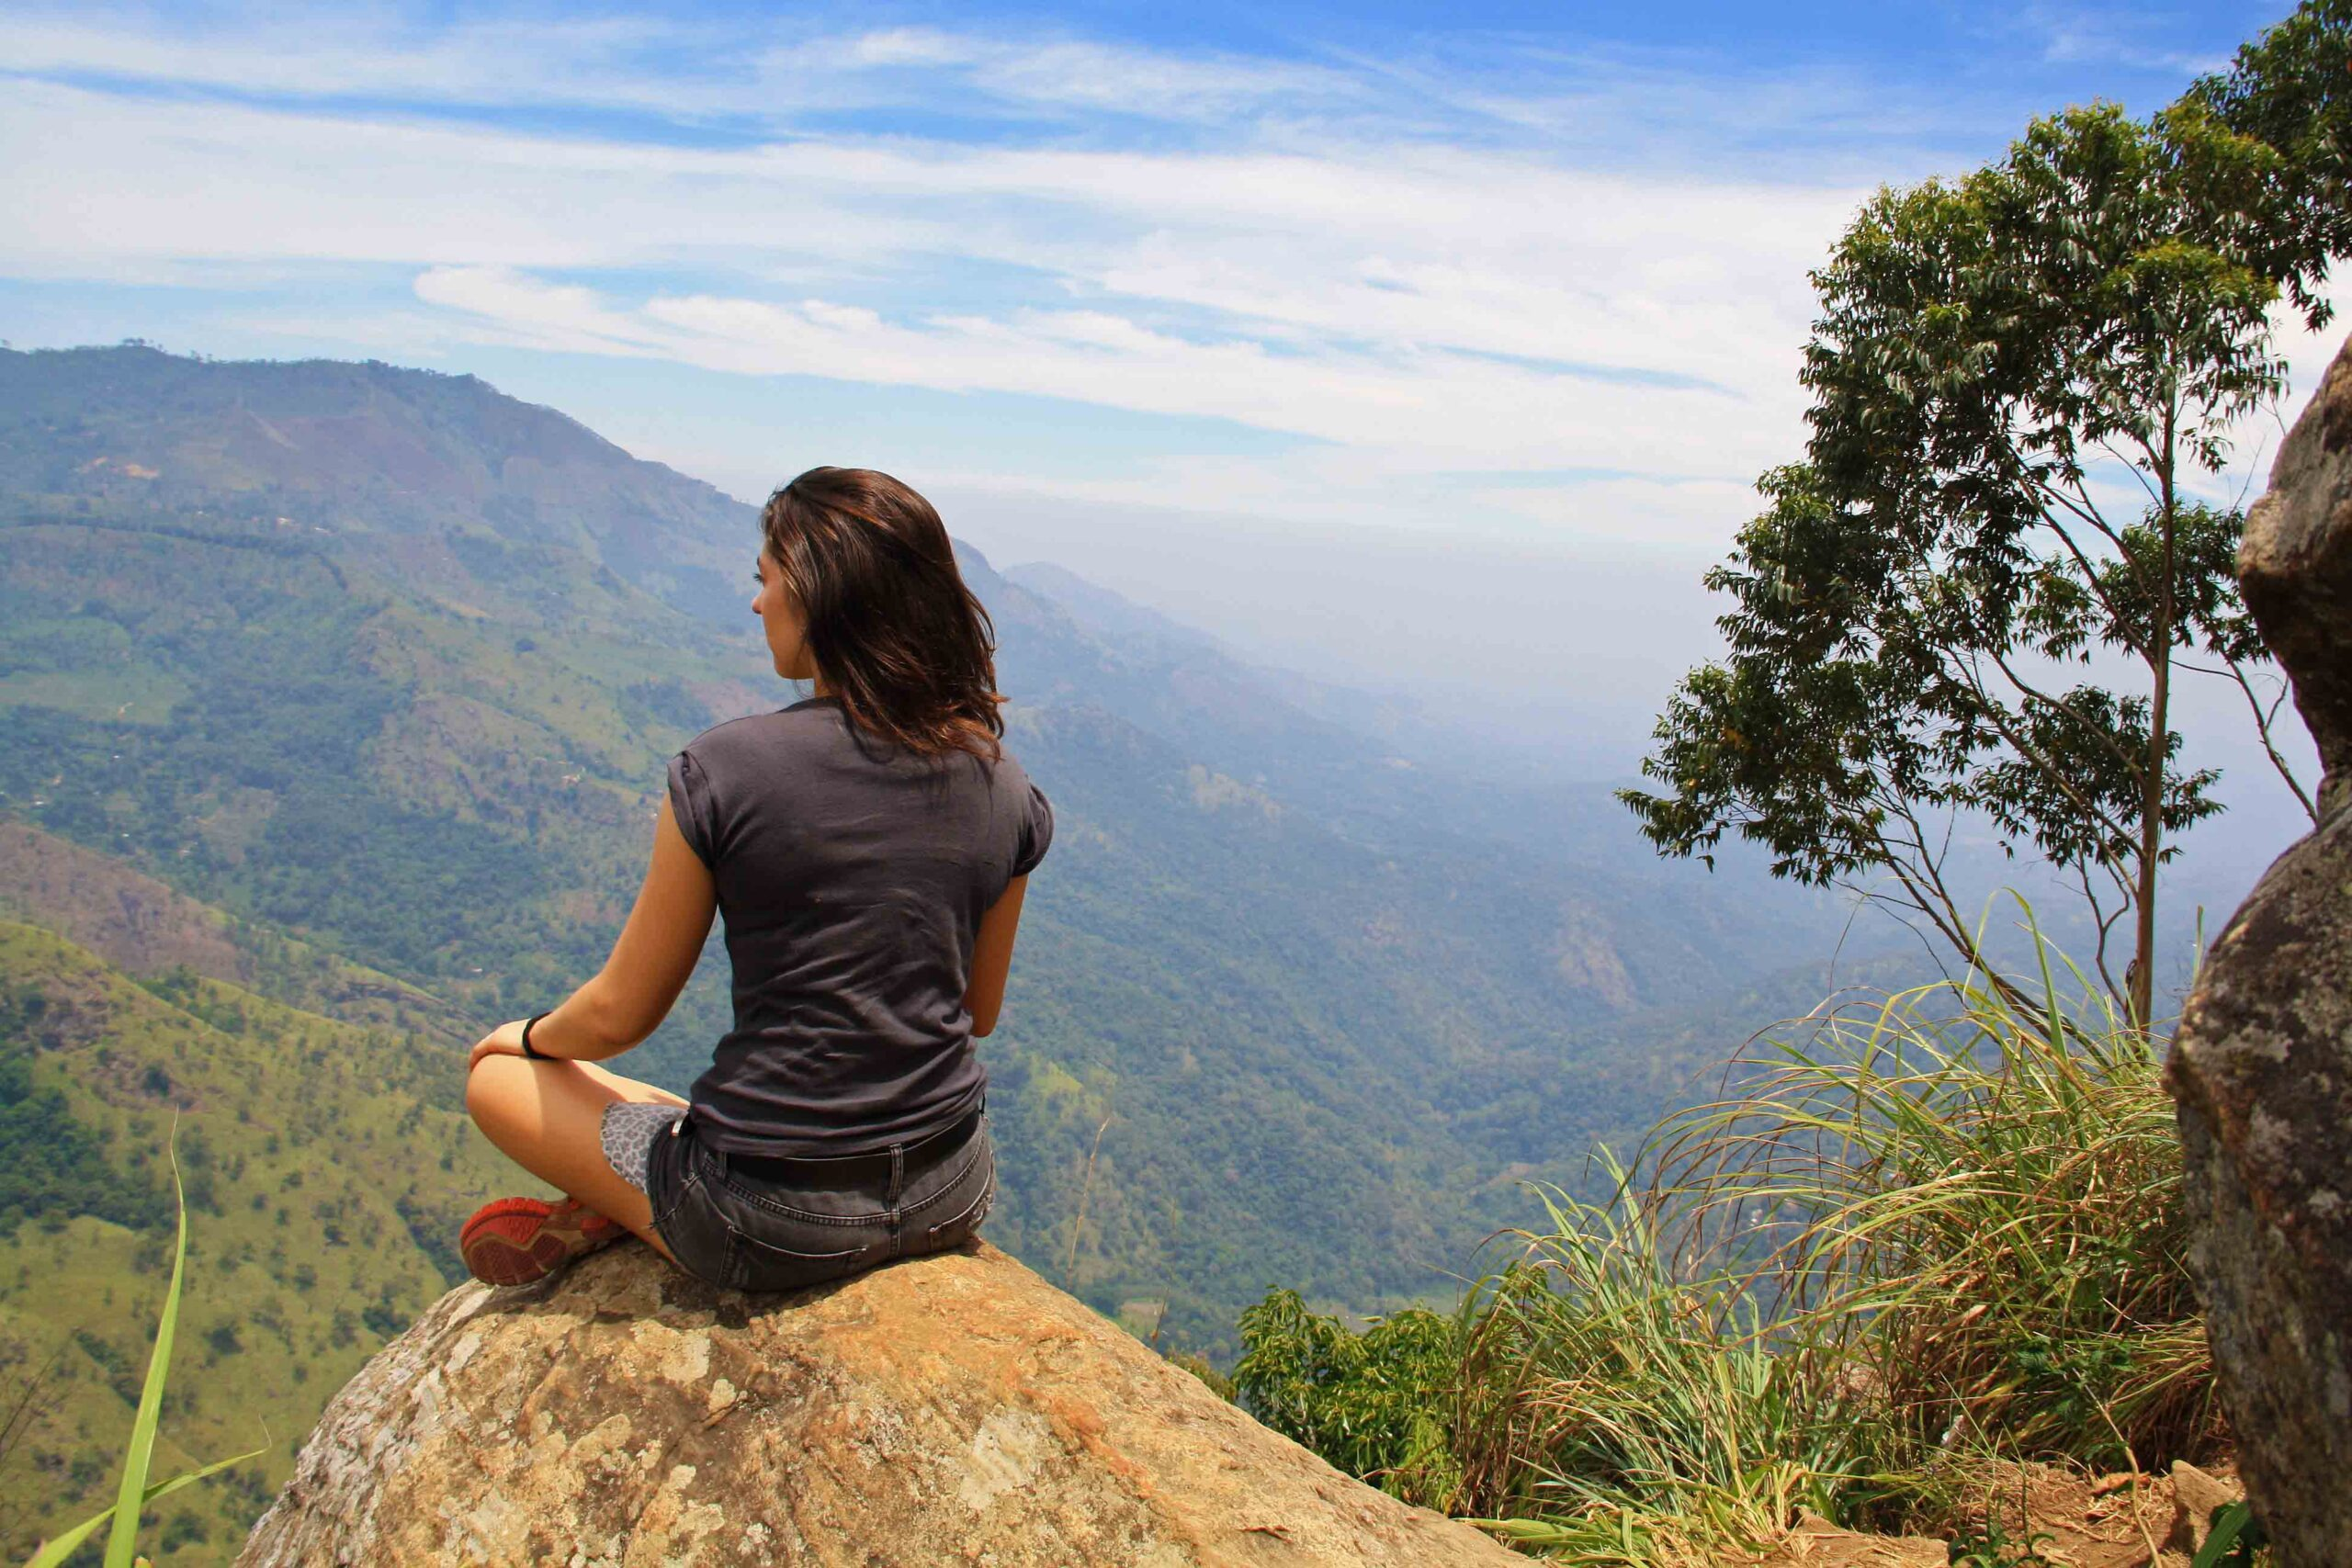 ella rock view climbing mountain sri lanka